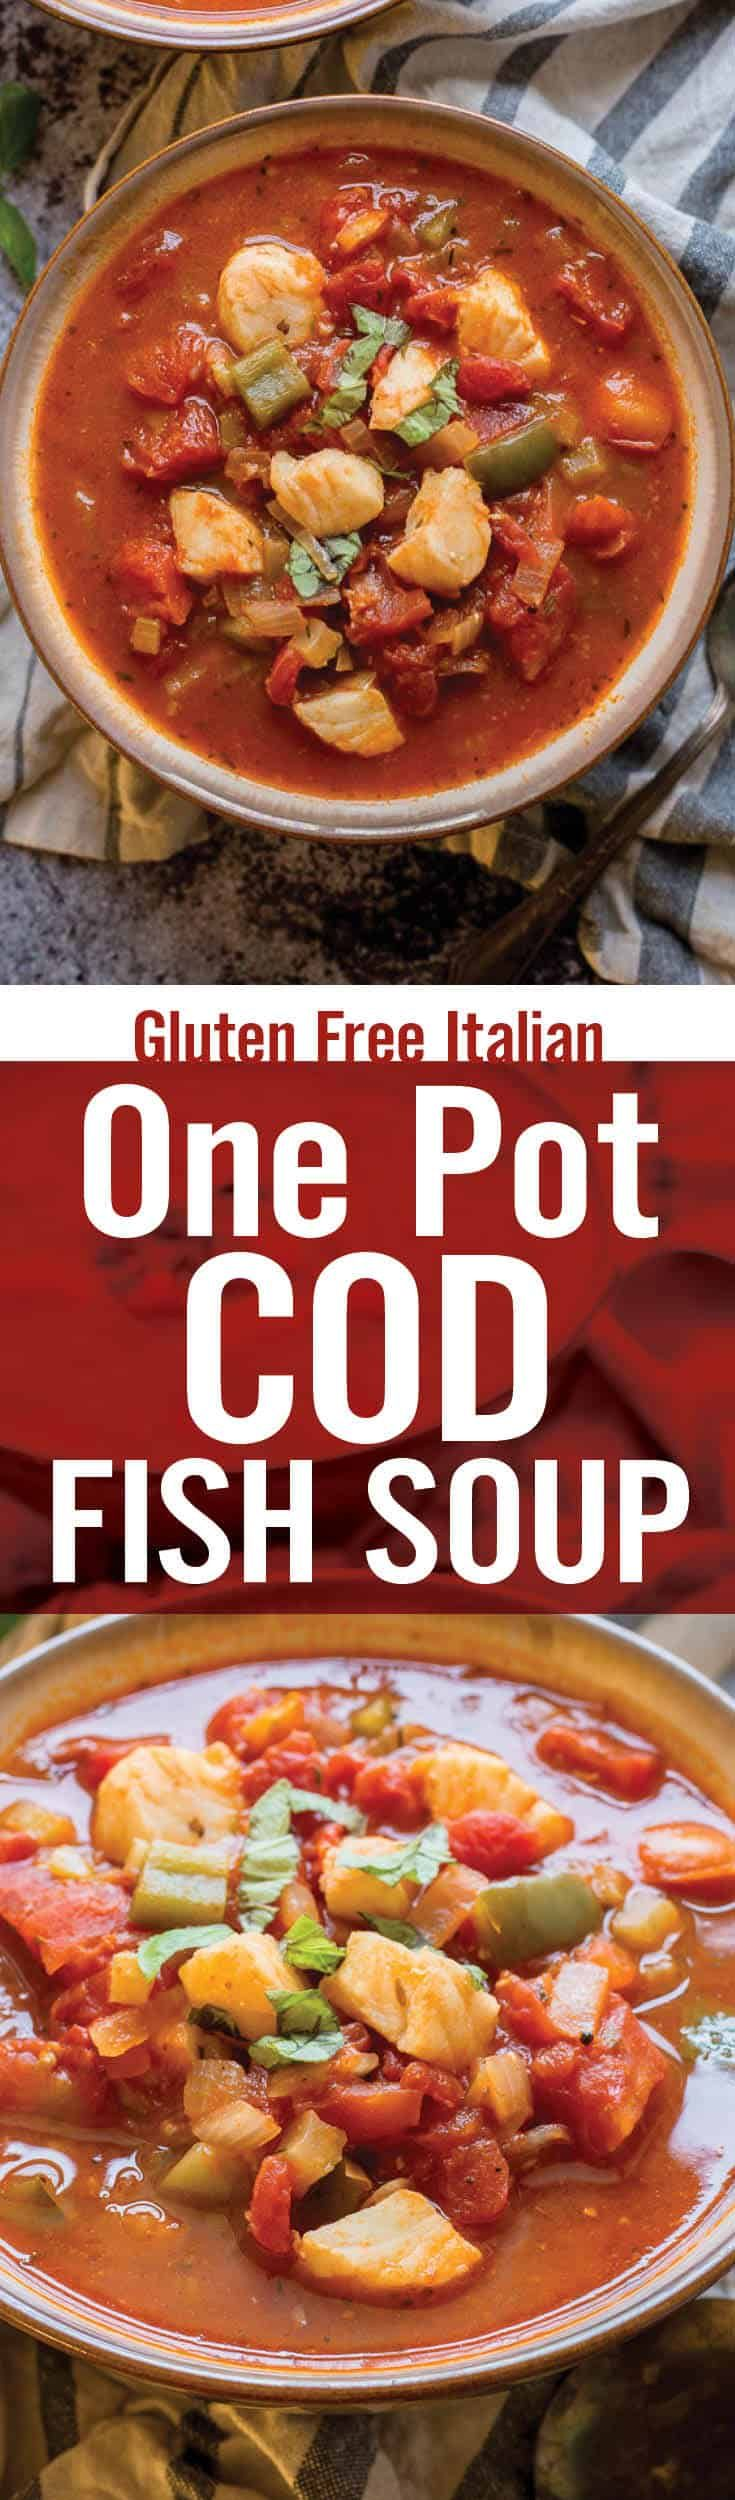 Quick And Healthy One Pot Cod Fish Soup Is Perfect For Cold Weather Winter Soup Recipe With Diced Tom Italian Fish Soup Recipe Soup Recipes Winter Soup Recipe